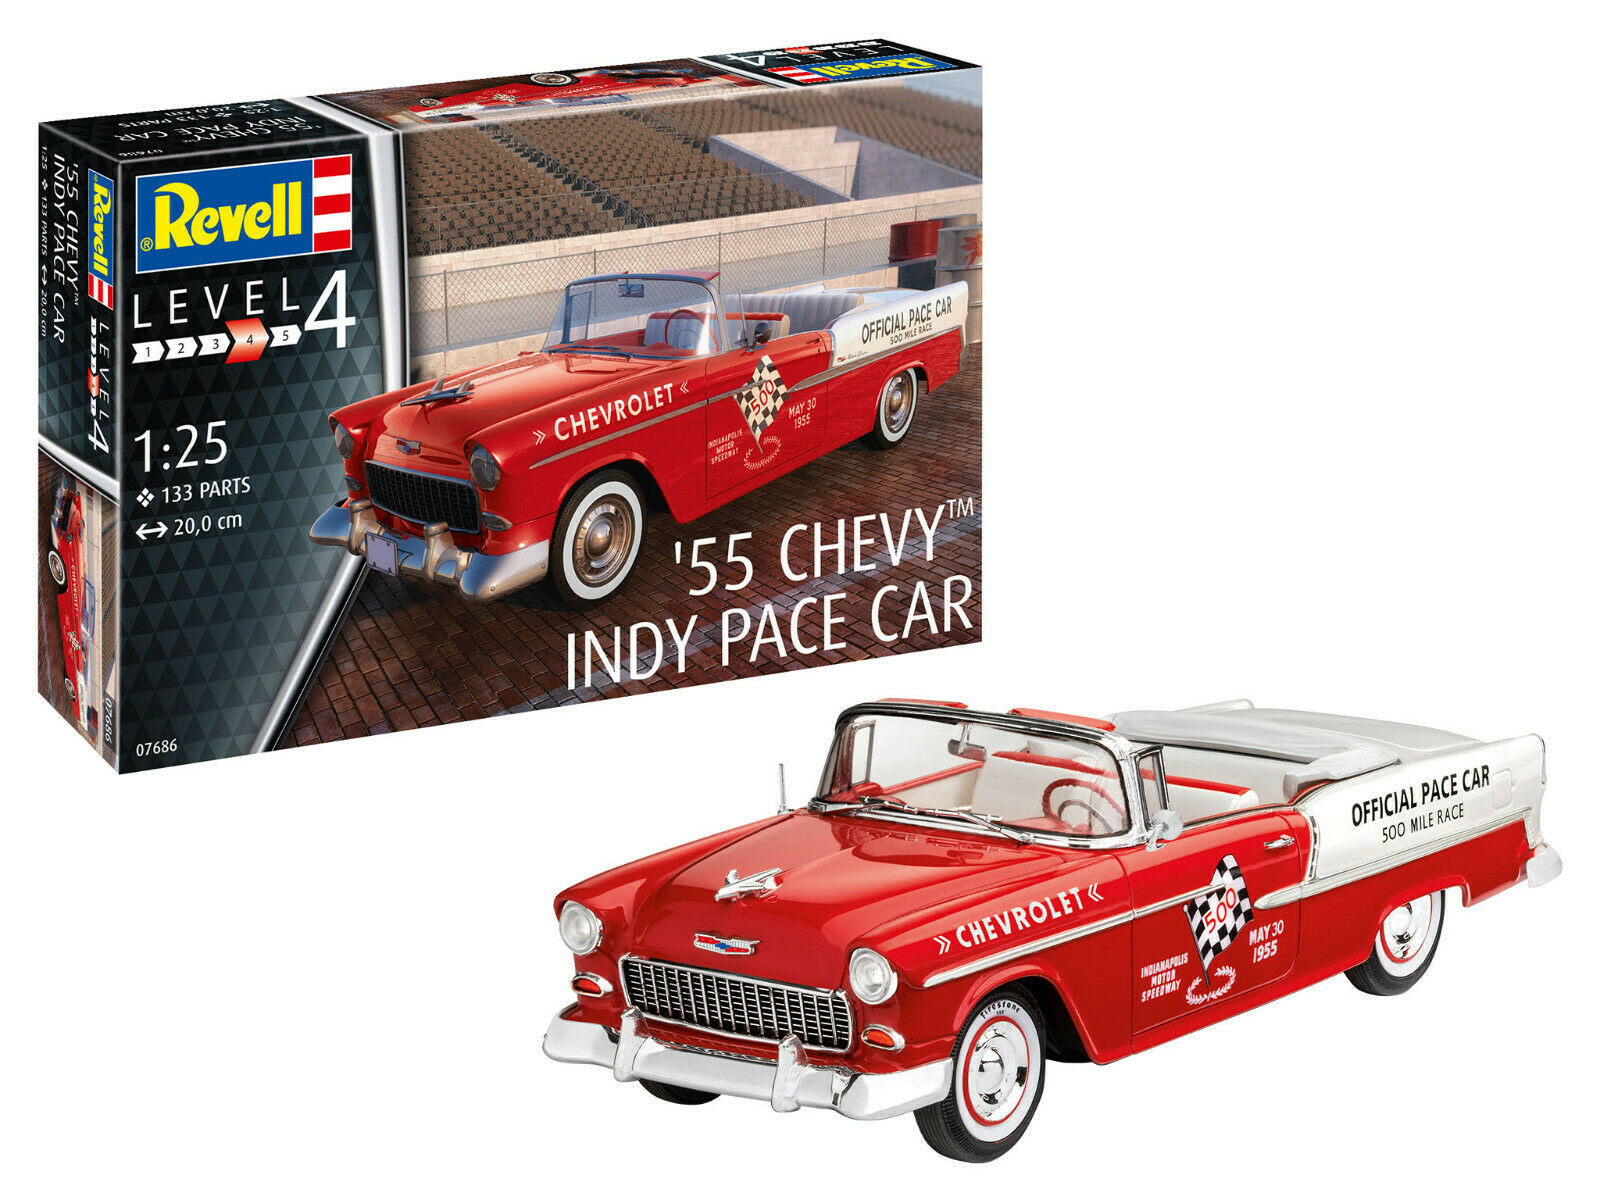 '55 chevy indy pace car revell car model kit 1 25, art.07686